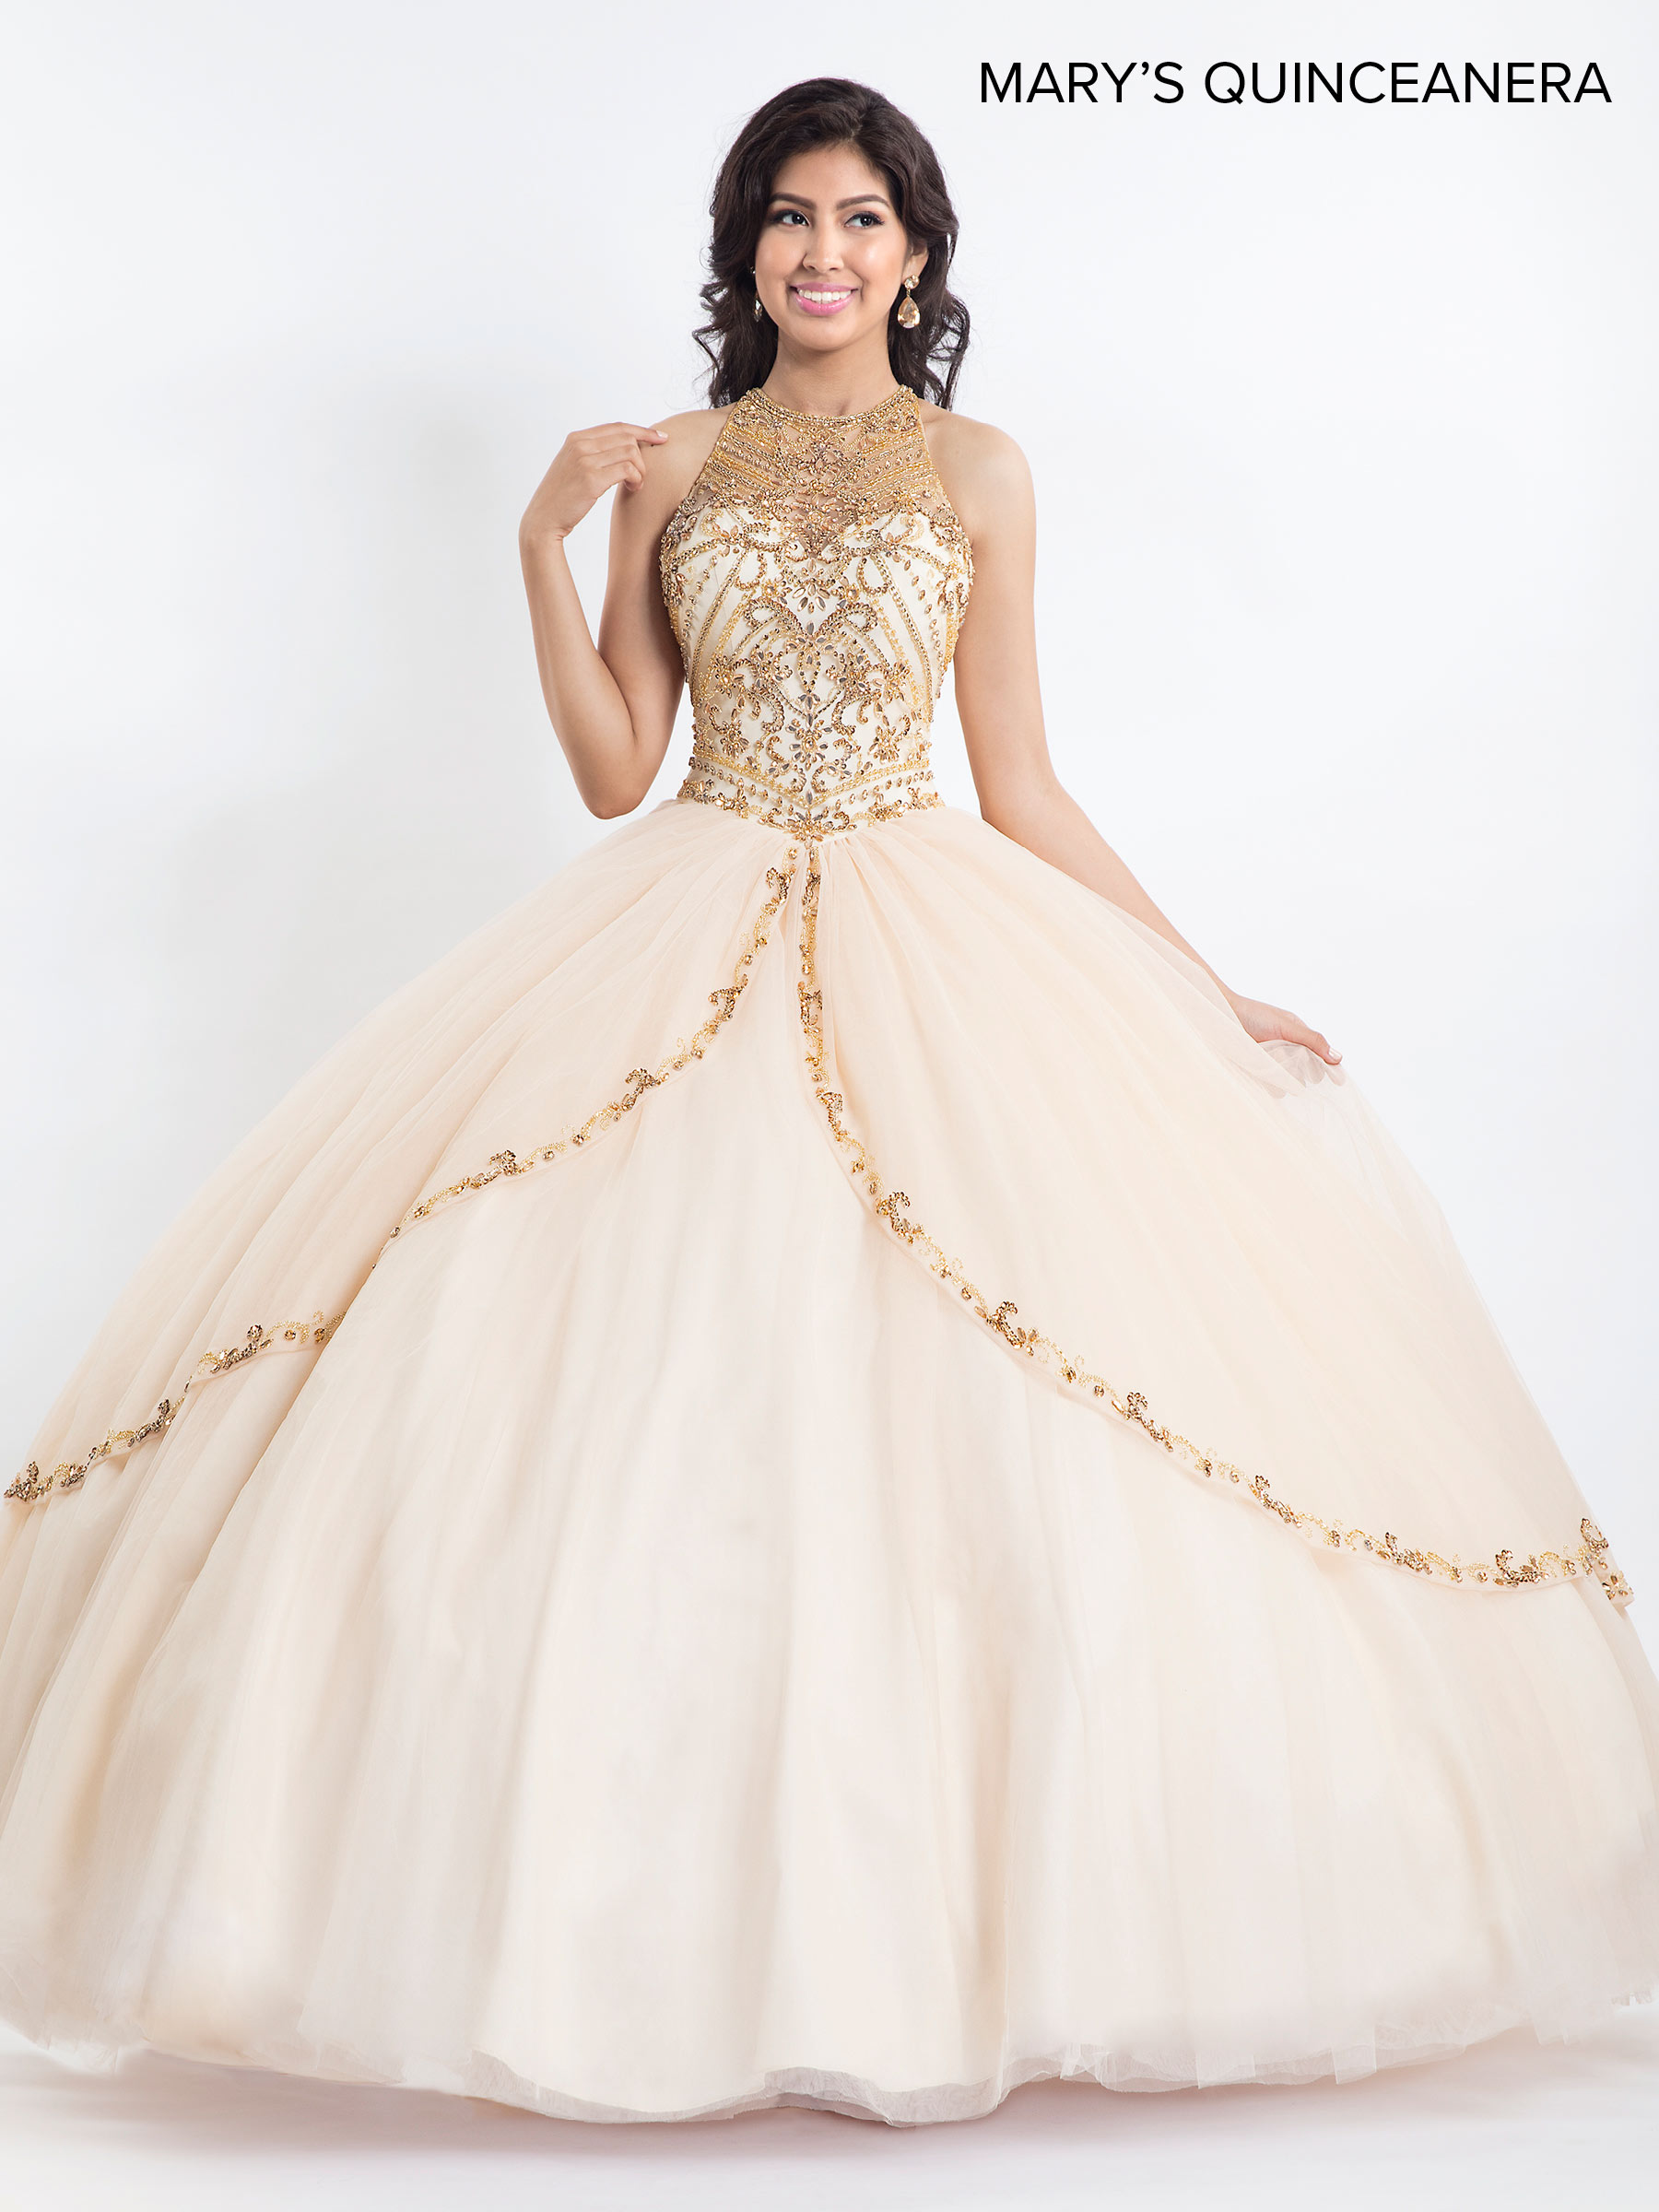 Marys Quinceanera Dresses | Mary's Quinceanera | Style - MQ2021